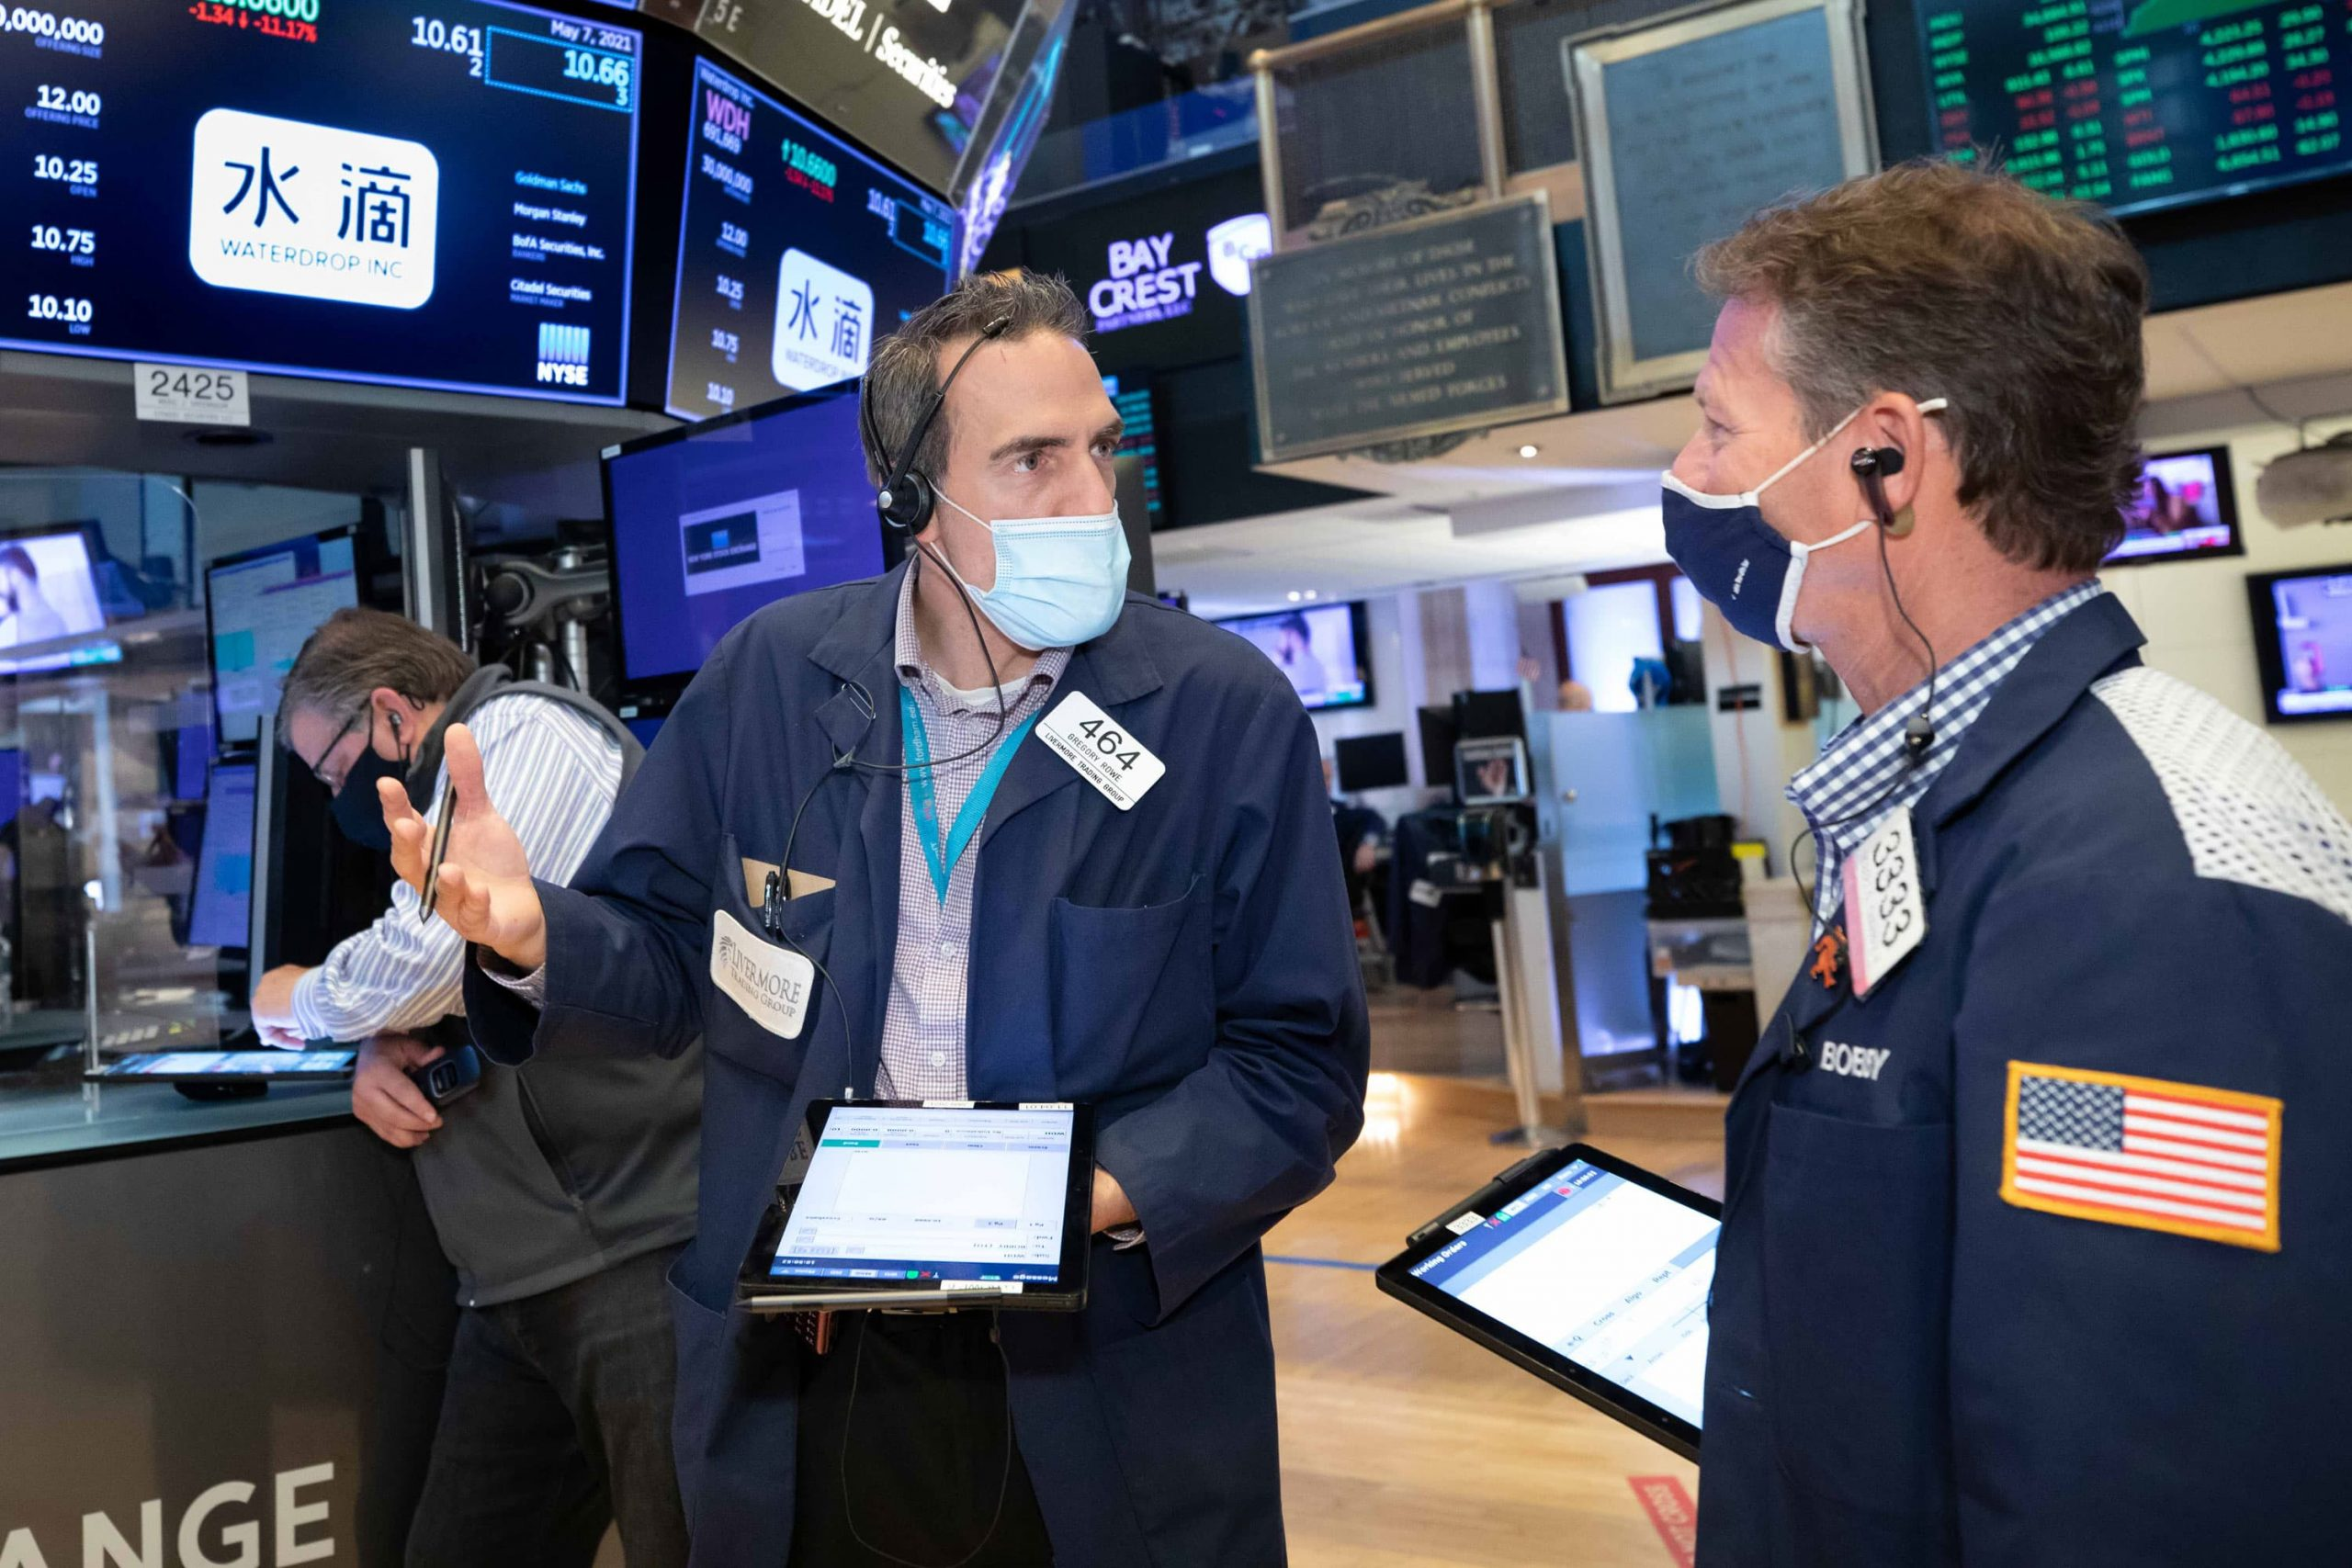 U.S. stock futures lower after Wall Street's worst week since February